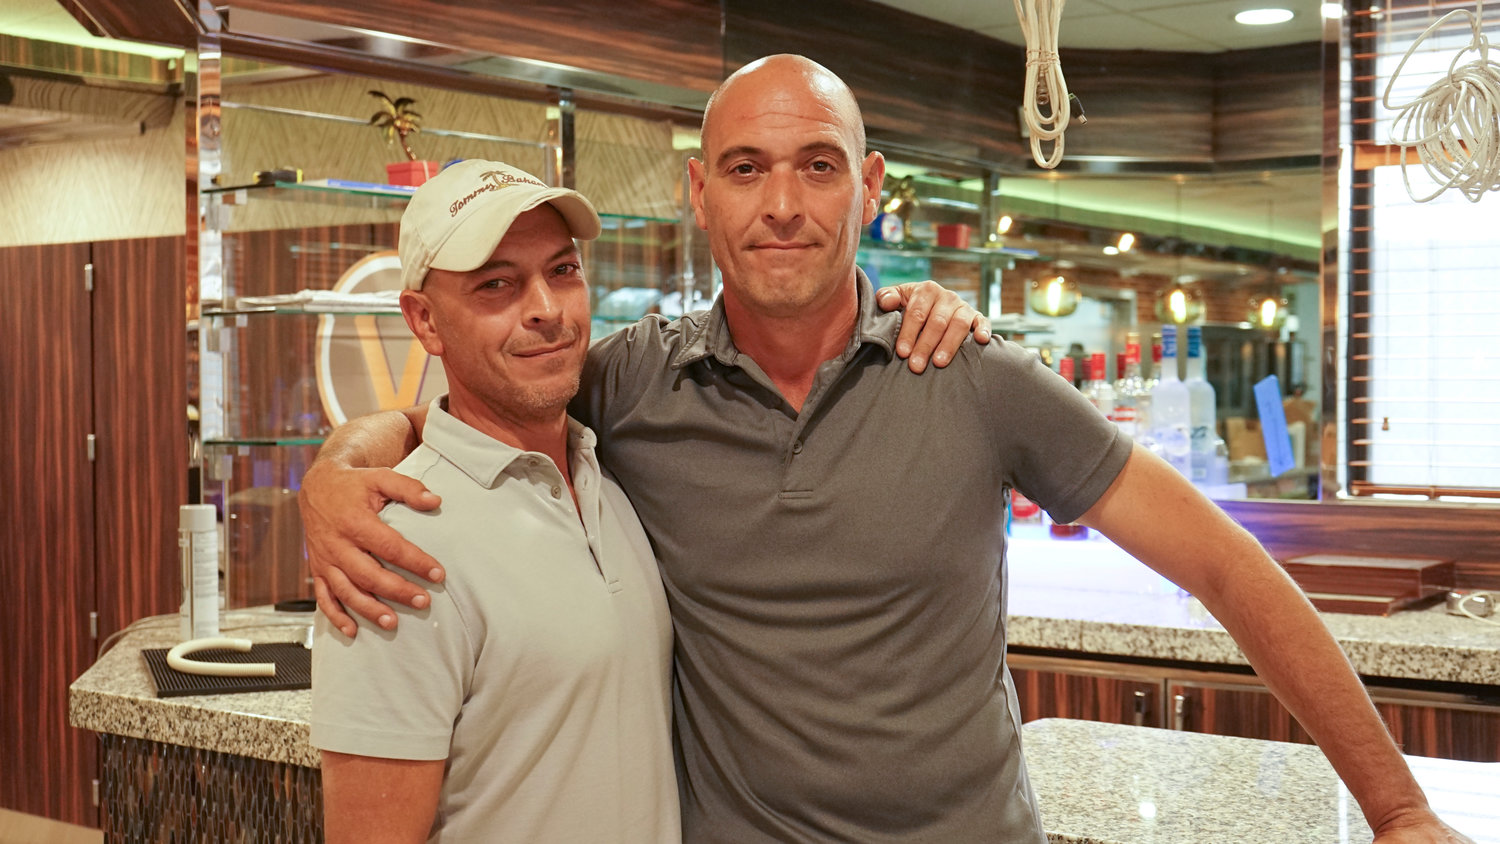 Brothers Tommy, left, and Anthony DiStefano, owners of the Valbrook Diner, plan to reopen the restaurant in the coming weeks after they embarked on a roughly six-month renovation.